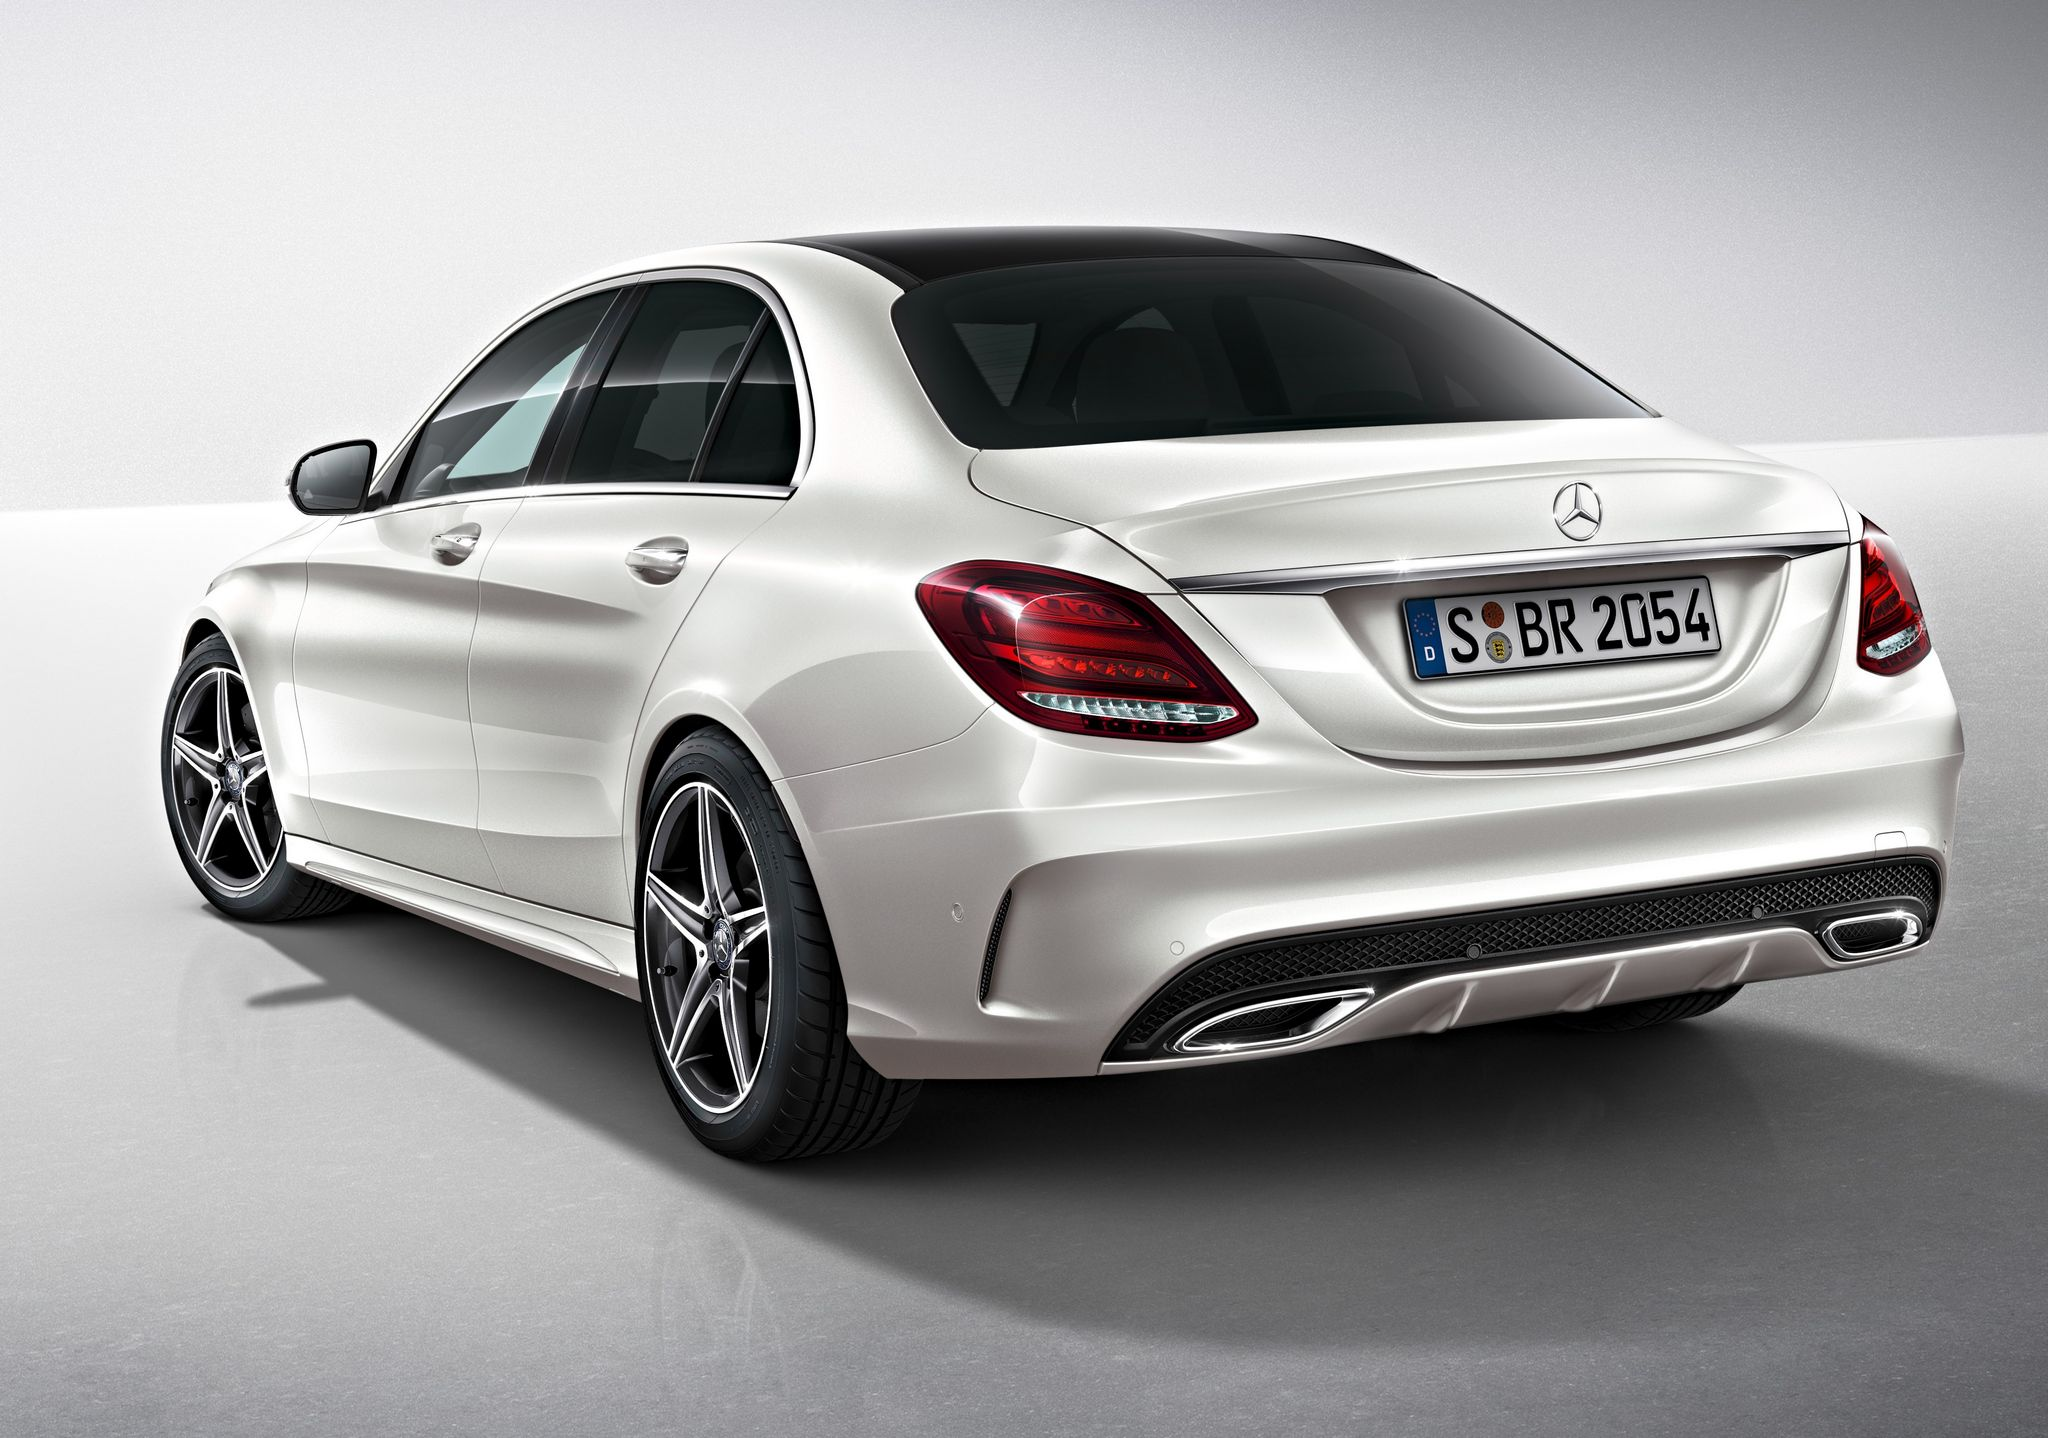 2015 mercedes c class amg line exterior pack for Mercedes benz 300 amg